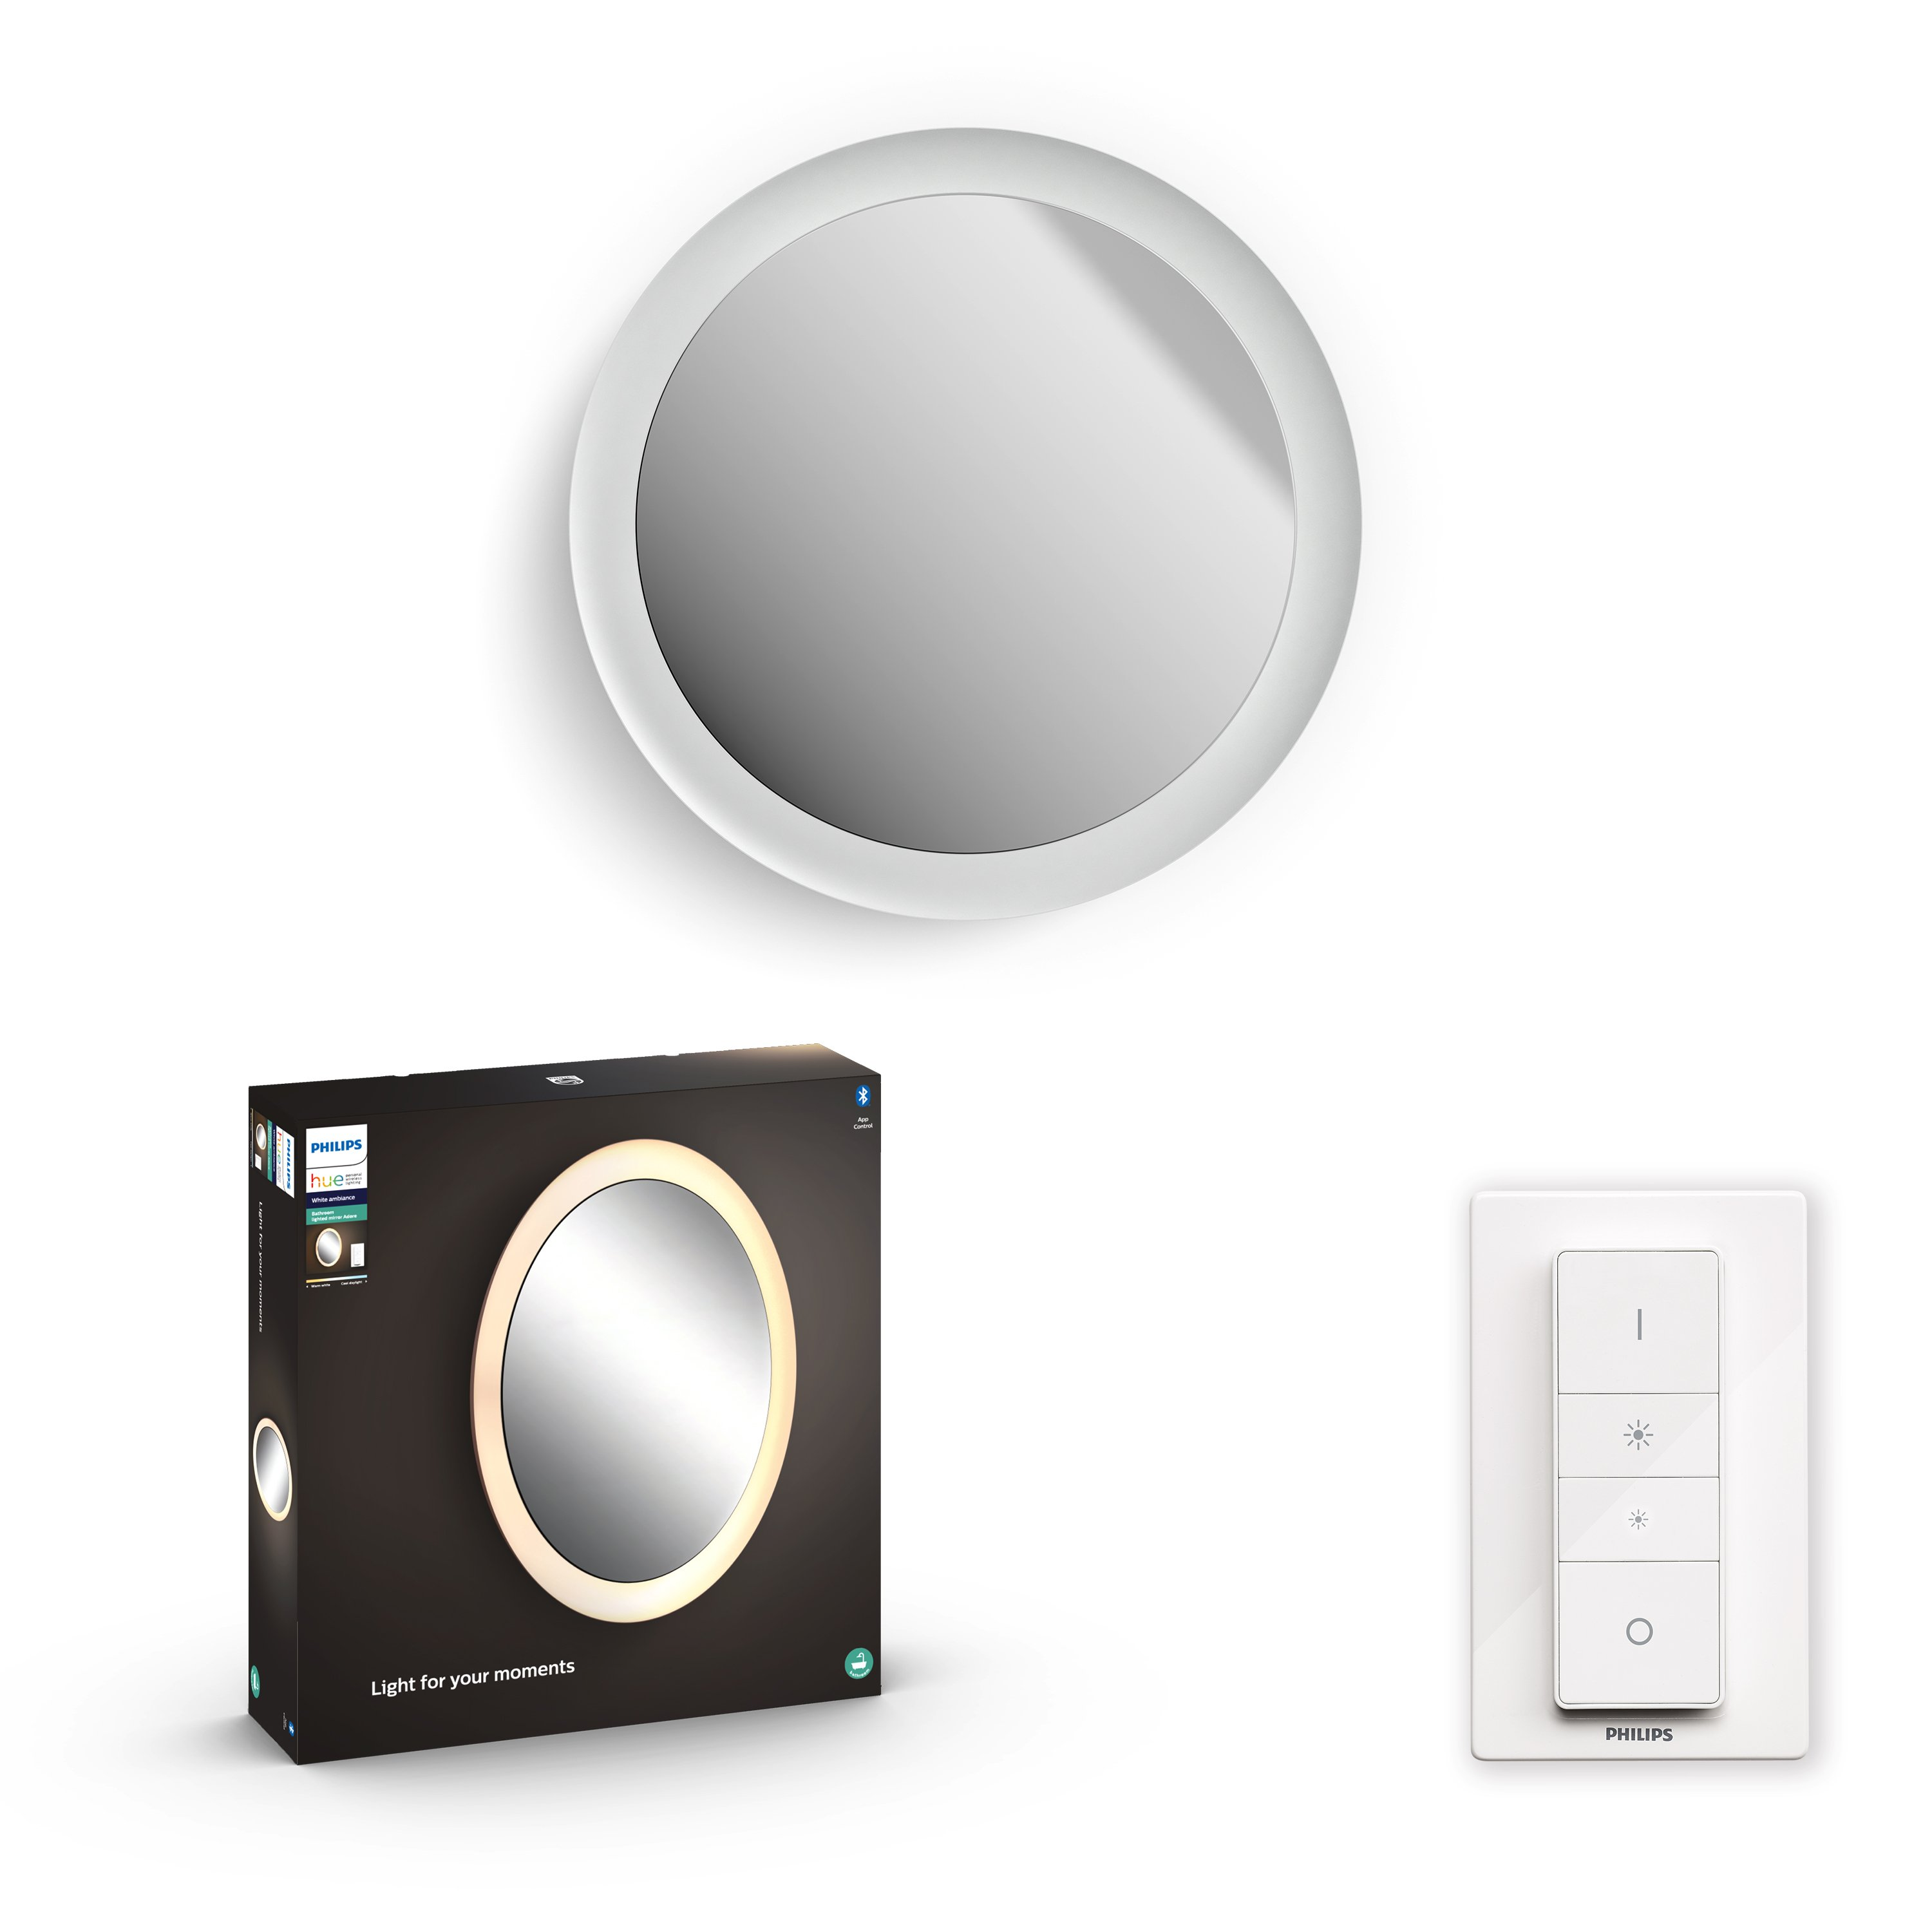 Philips Hue - Adore Hue wall lamp white 1x40W 24V - White Ambiance - Bluetooth Included dimmer switch